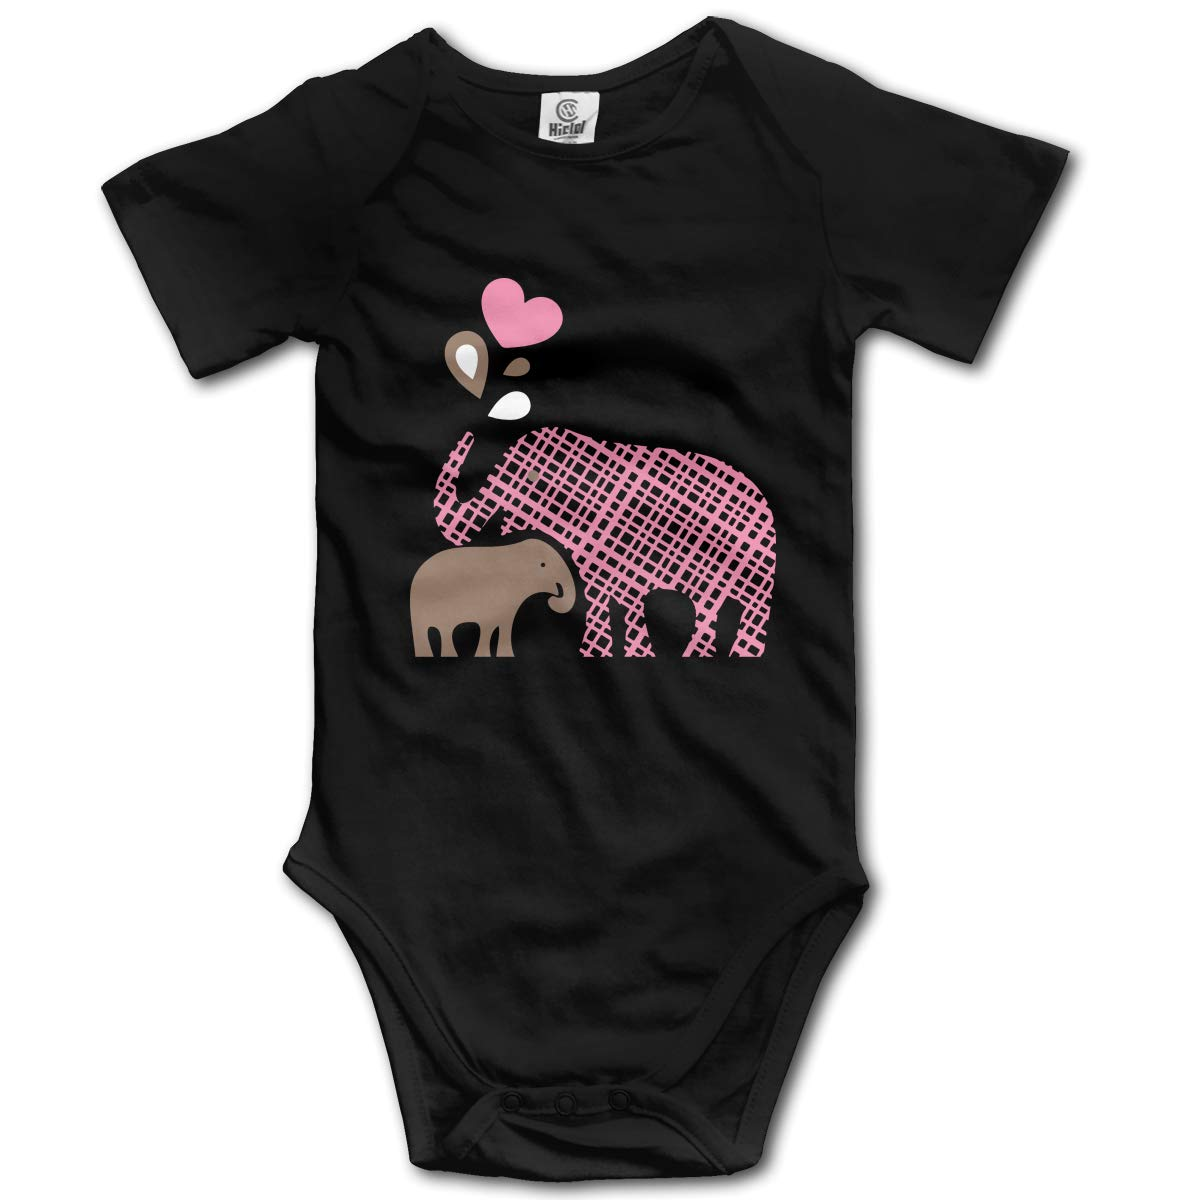 Mama and Baby Elephant Clipart Baby Unisex 100/% Organic Cotton Rompers Costume Jumpsuit 0-24M